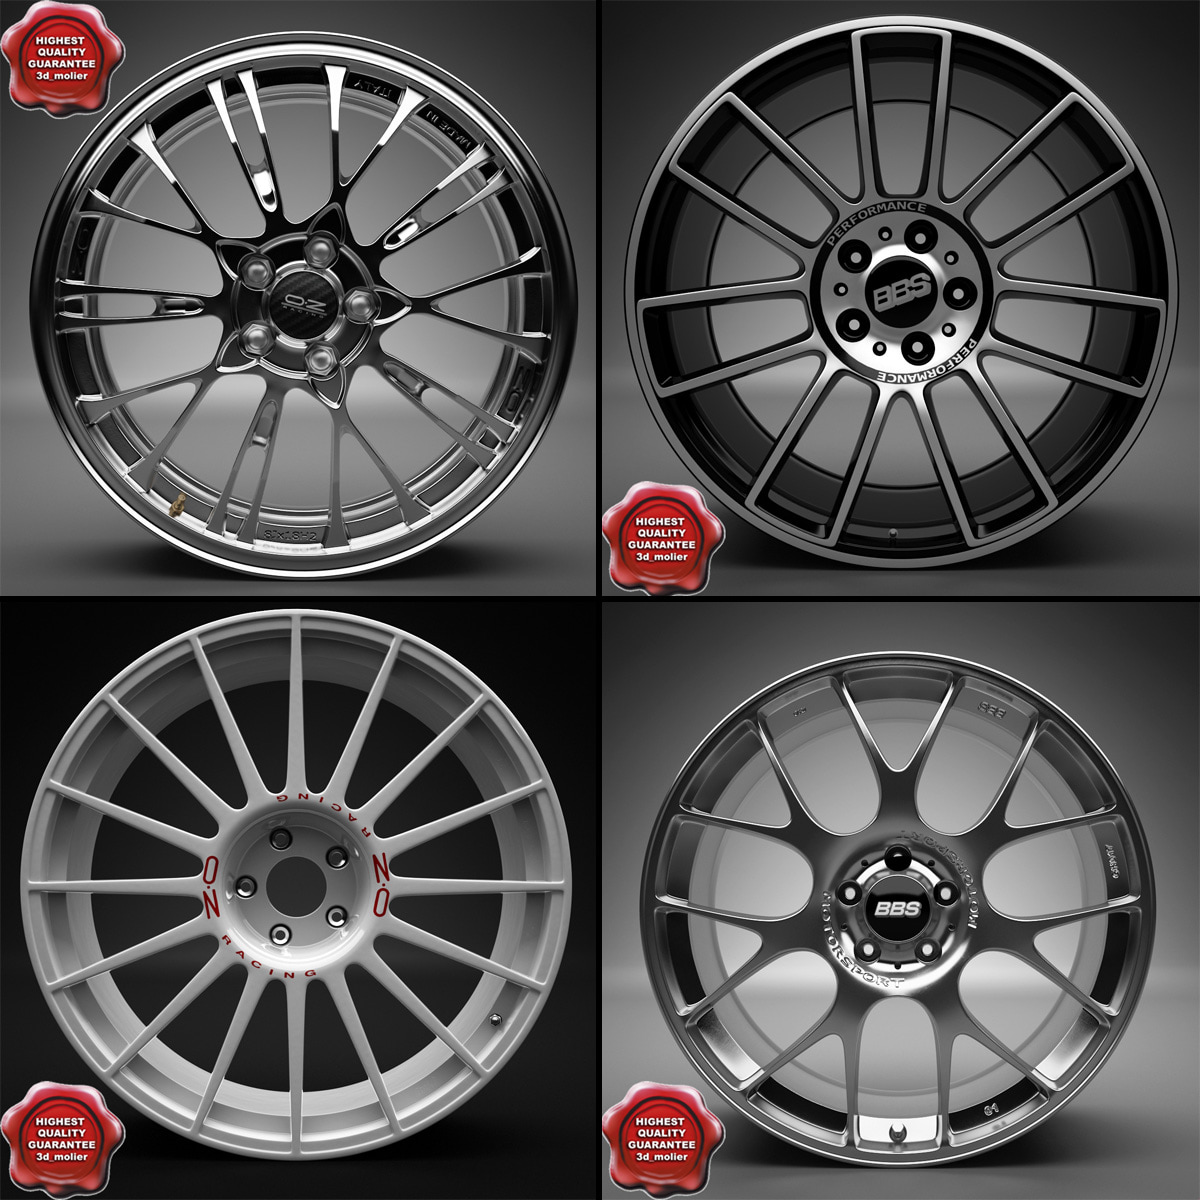 Auto_Wheel_Trims_Collection_00.jpg